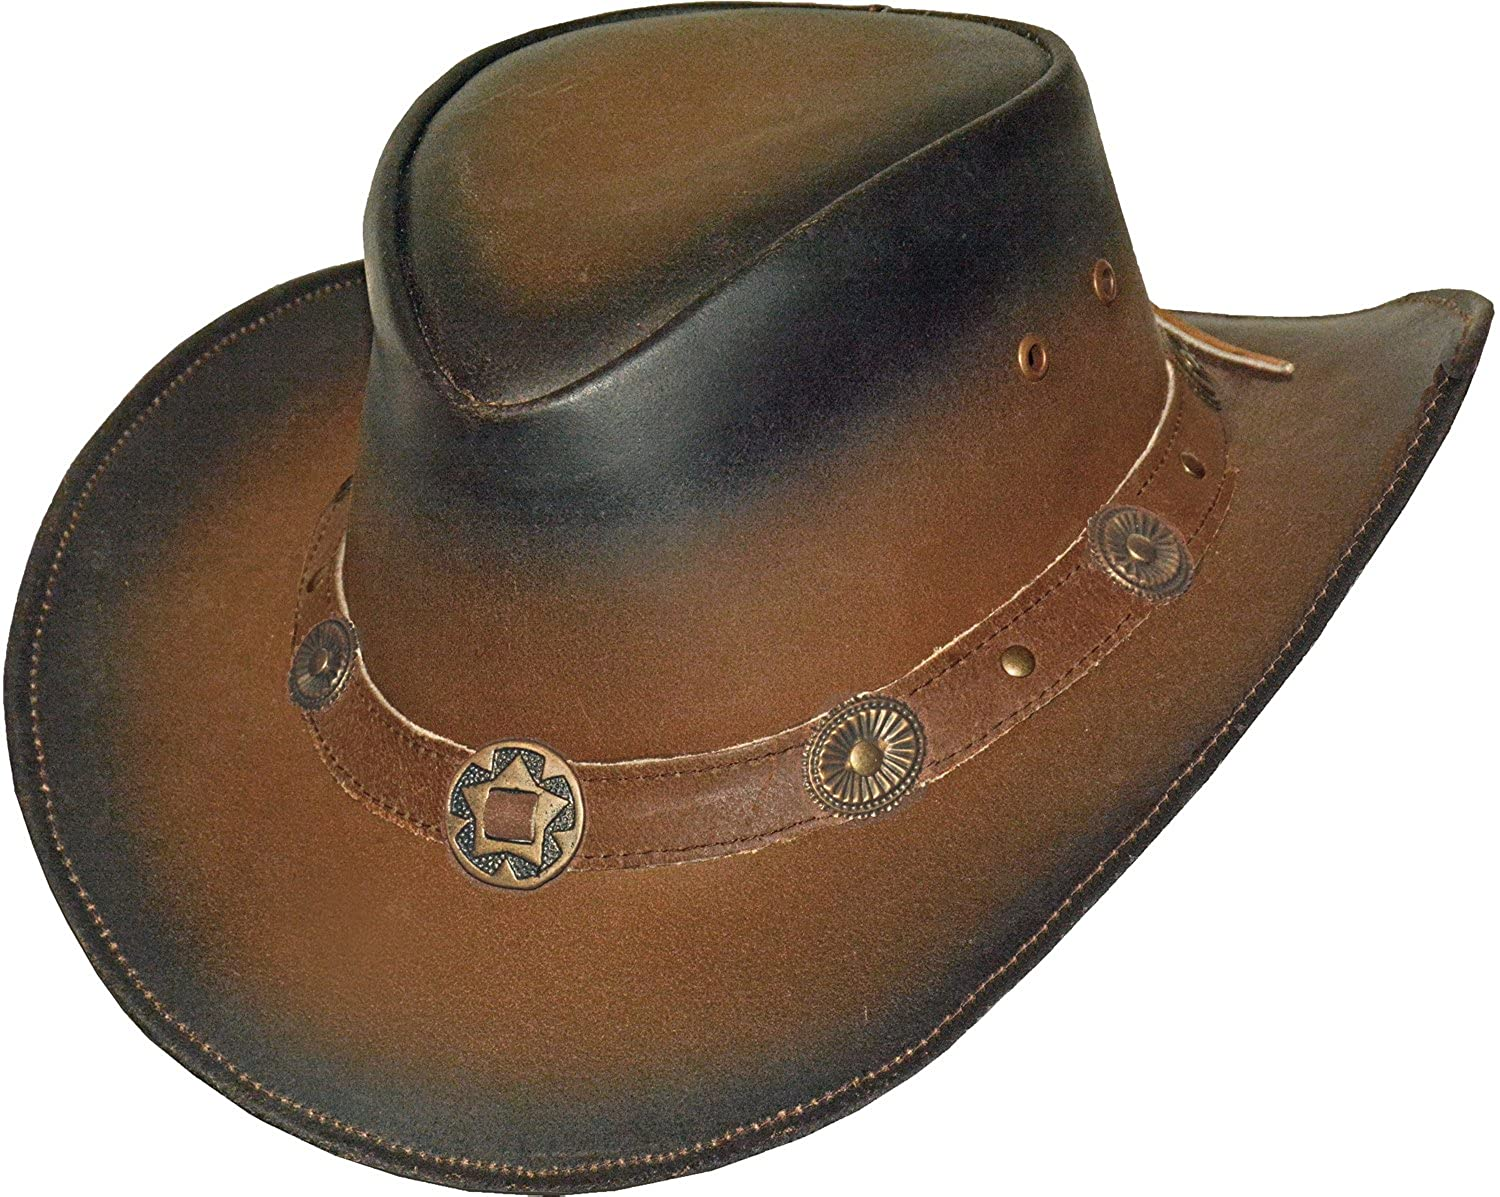 Black Jungle Texaner - Cowboy Leather Hat Size S-XL 10-20-201